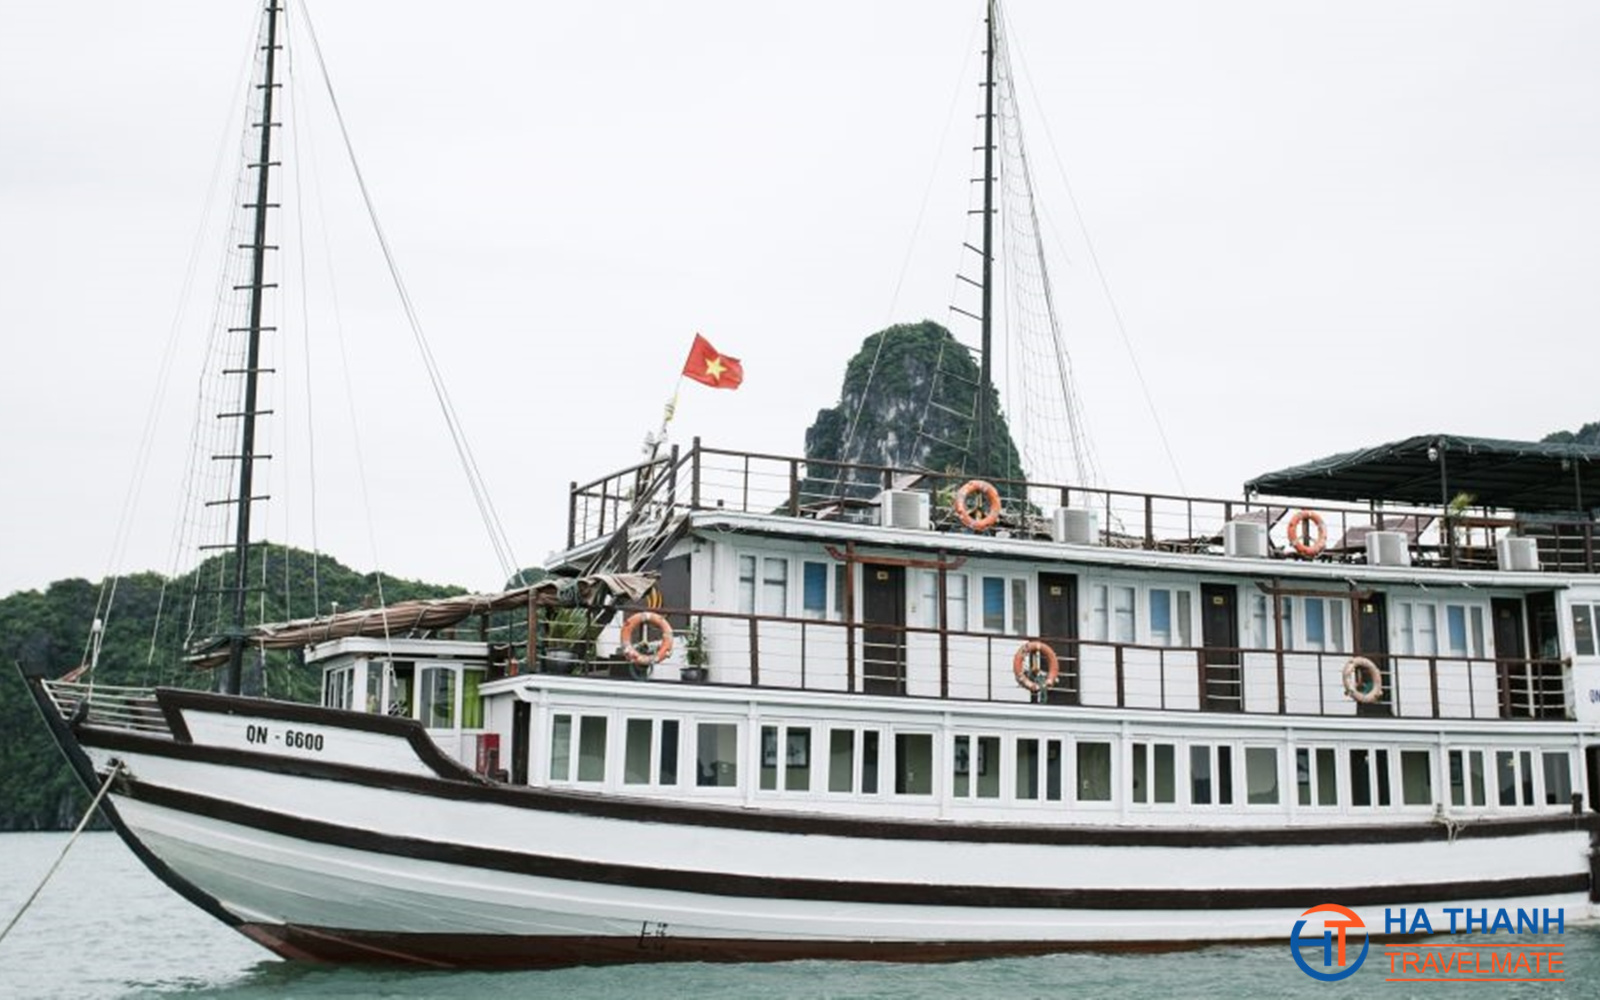 Halong Majestic Cruise 2 days/1 night